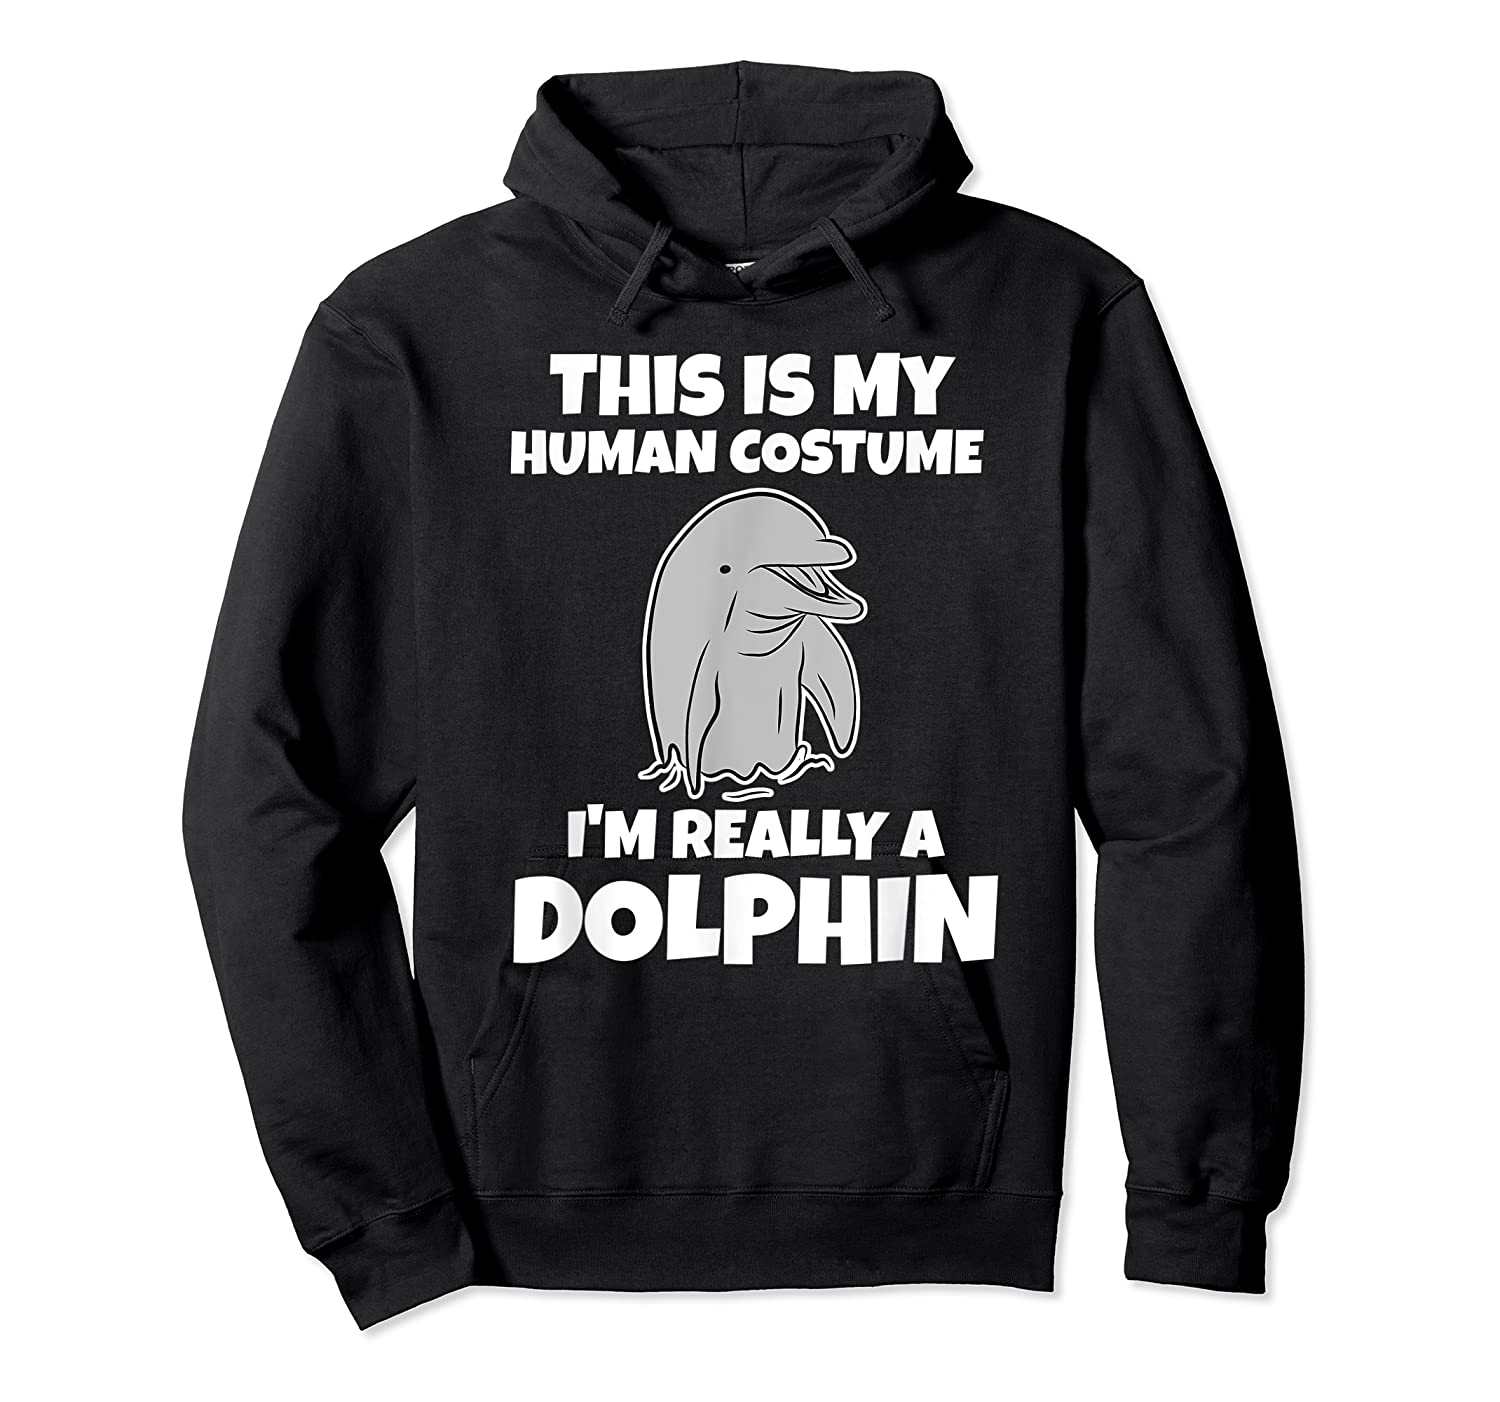 This Is My Human Costume I'm Really A Dolphin Funny Shirts Unisex Pullover Hoodie